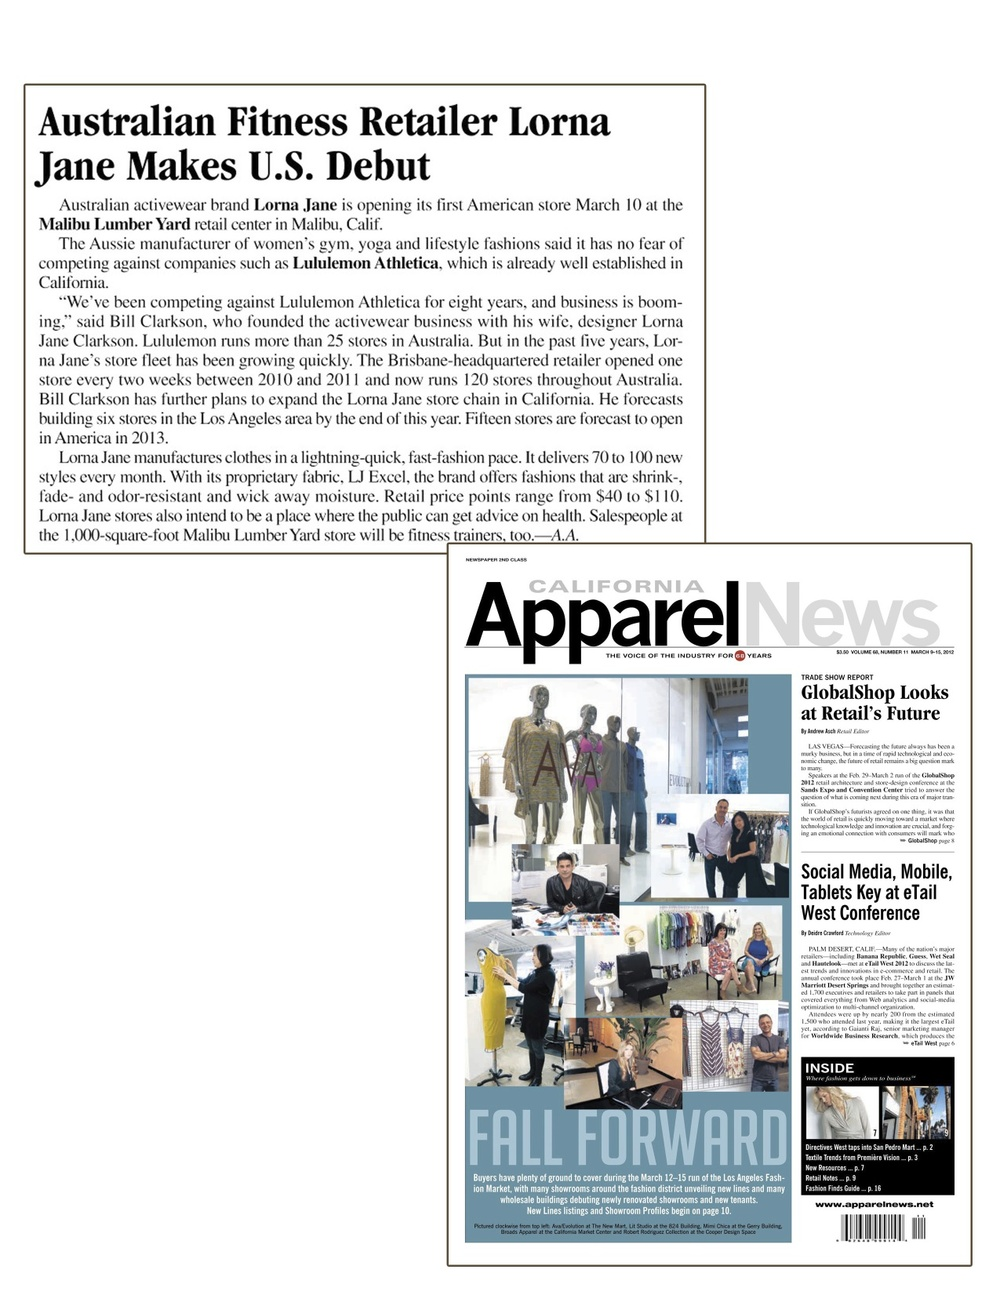 Mar. 9. 2012 - CA Apparel News - Lorna Jane.jpg